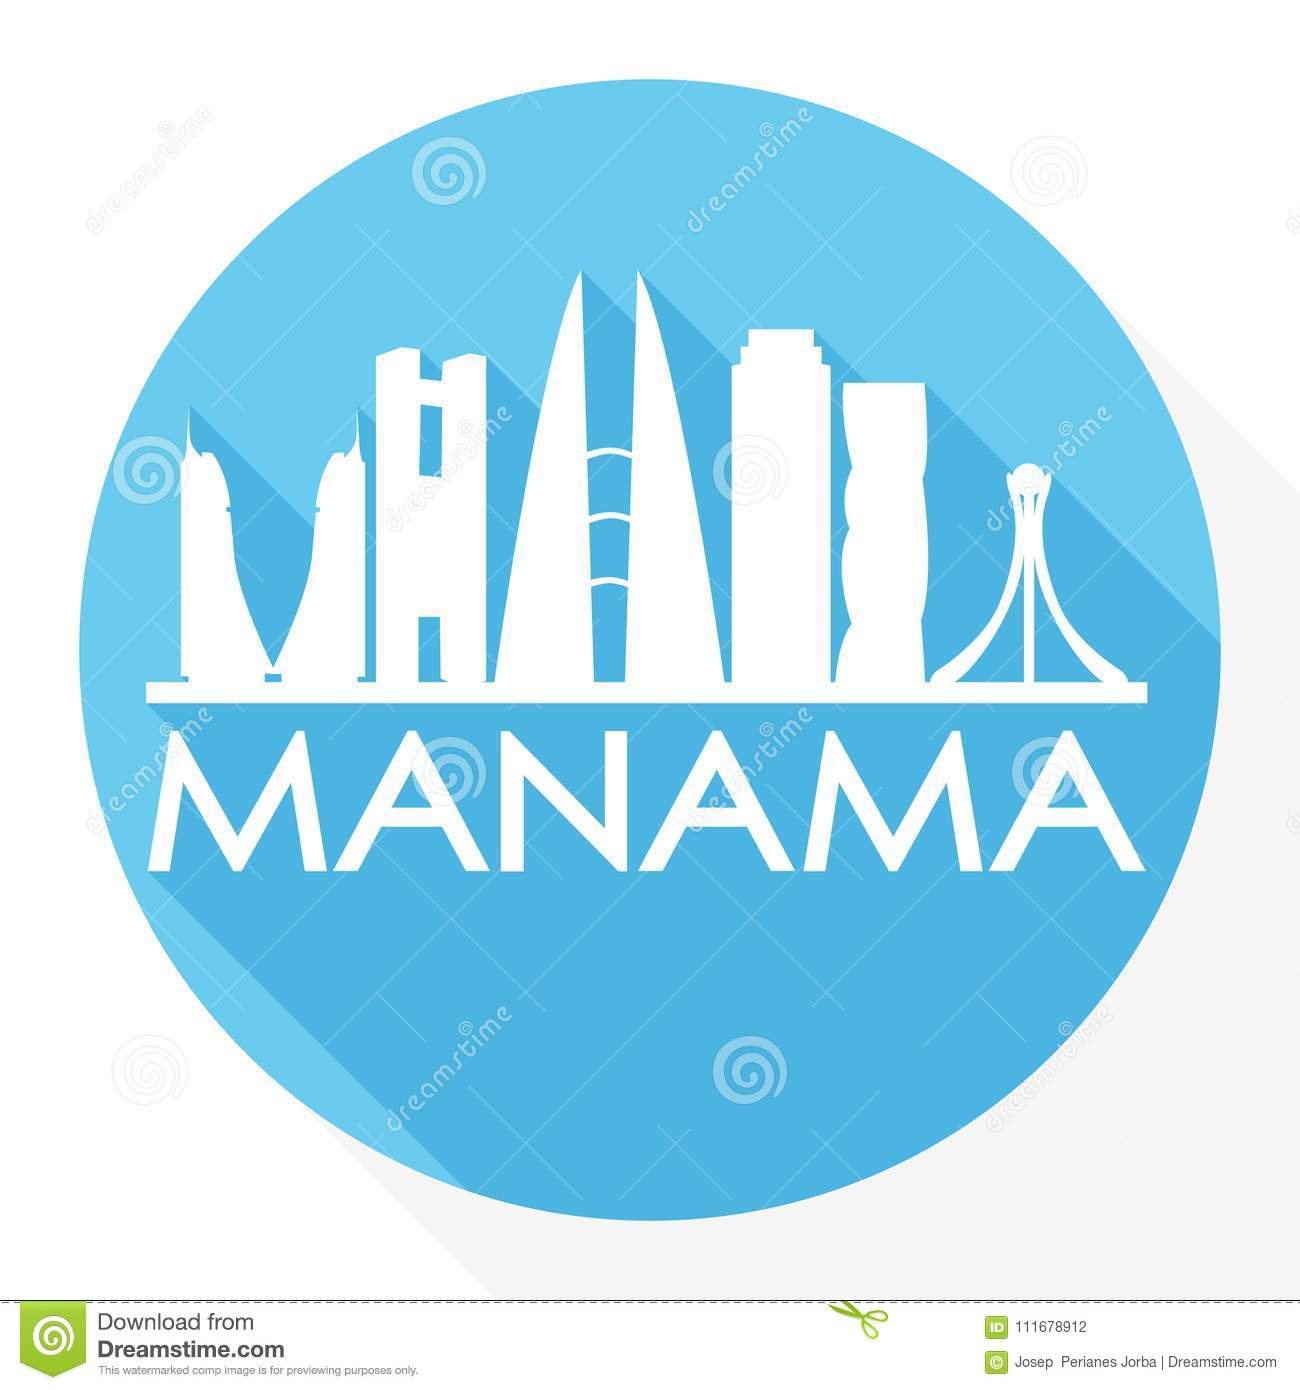 fc7b0fde96d6 Royalty-Free Vector. Manama Bahrain Asia Round Icon Vector Art Flat Shadow  Design Skyline City Silhouette Template Logo